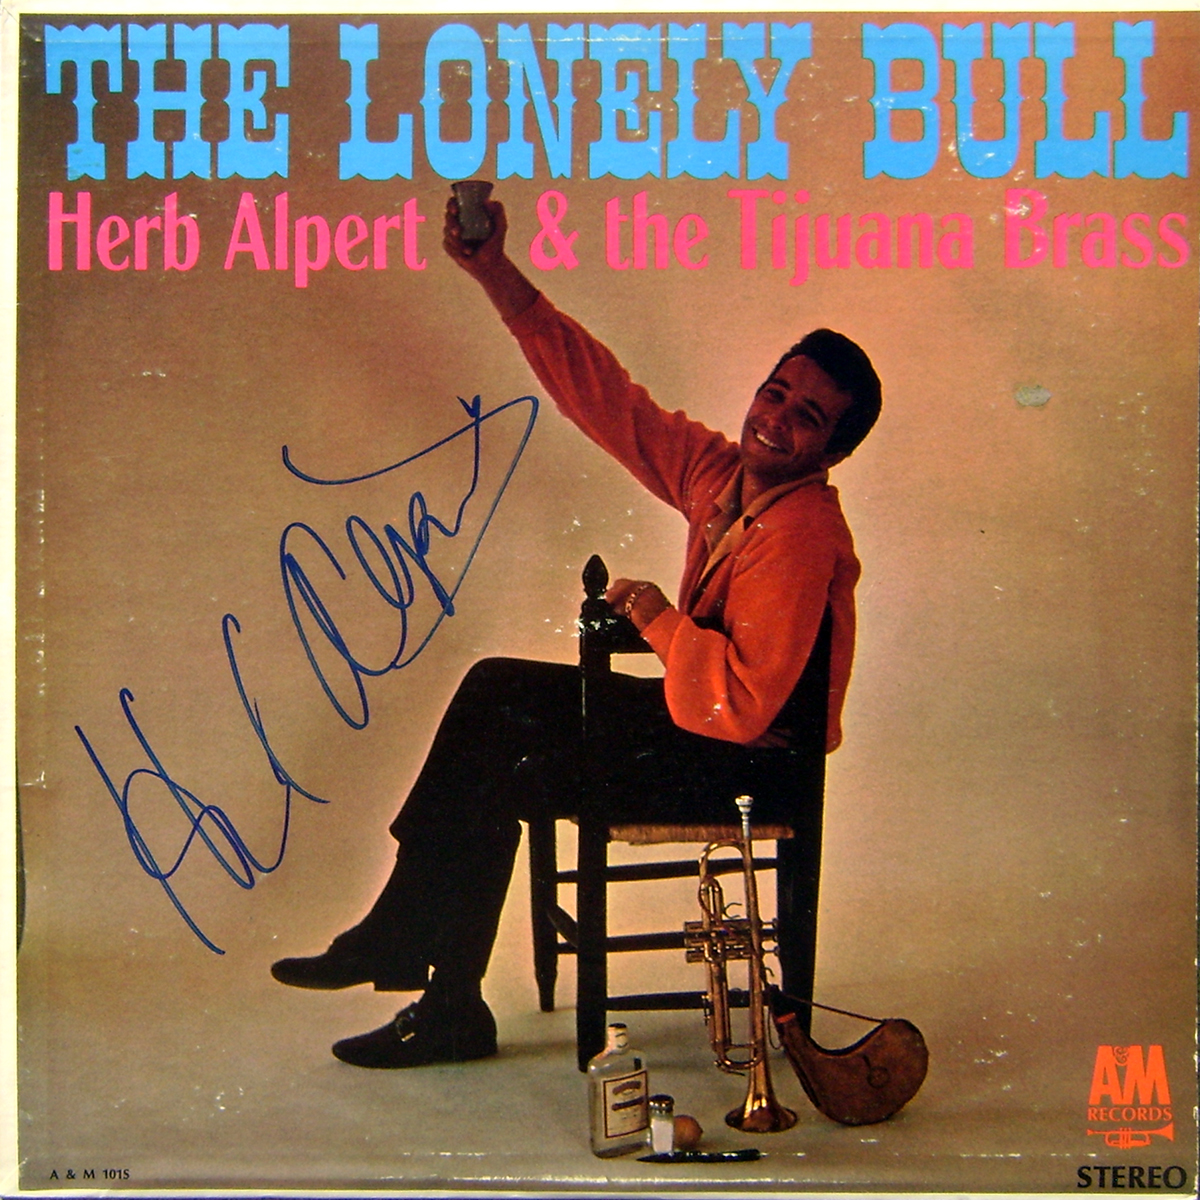 Herb Alpert & The Tijuana Brass LP - The Lonely Bull